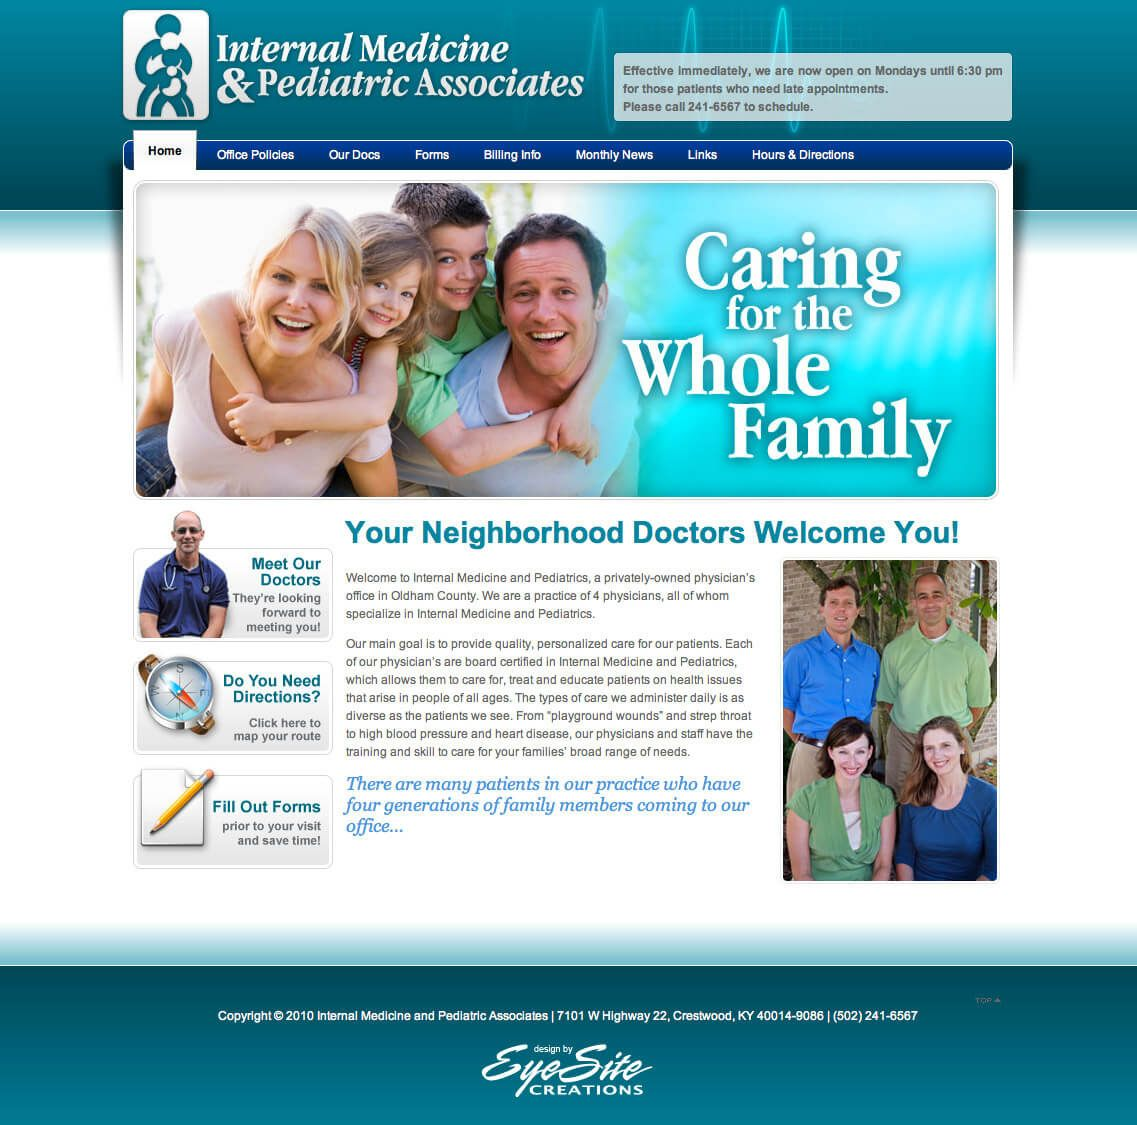 Internal Medicine & Pediatrics website by EyeSite Creations